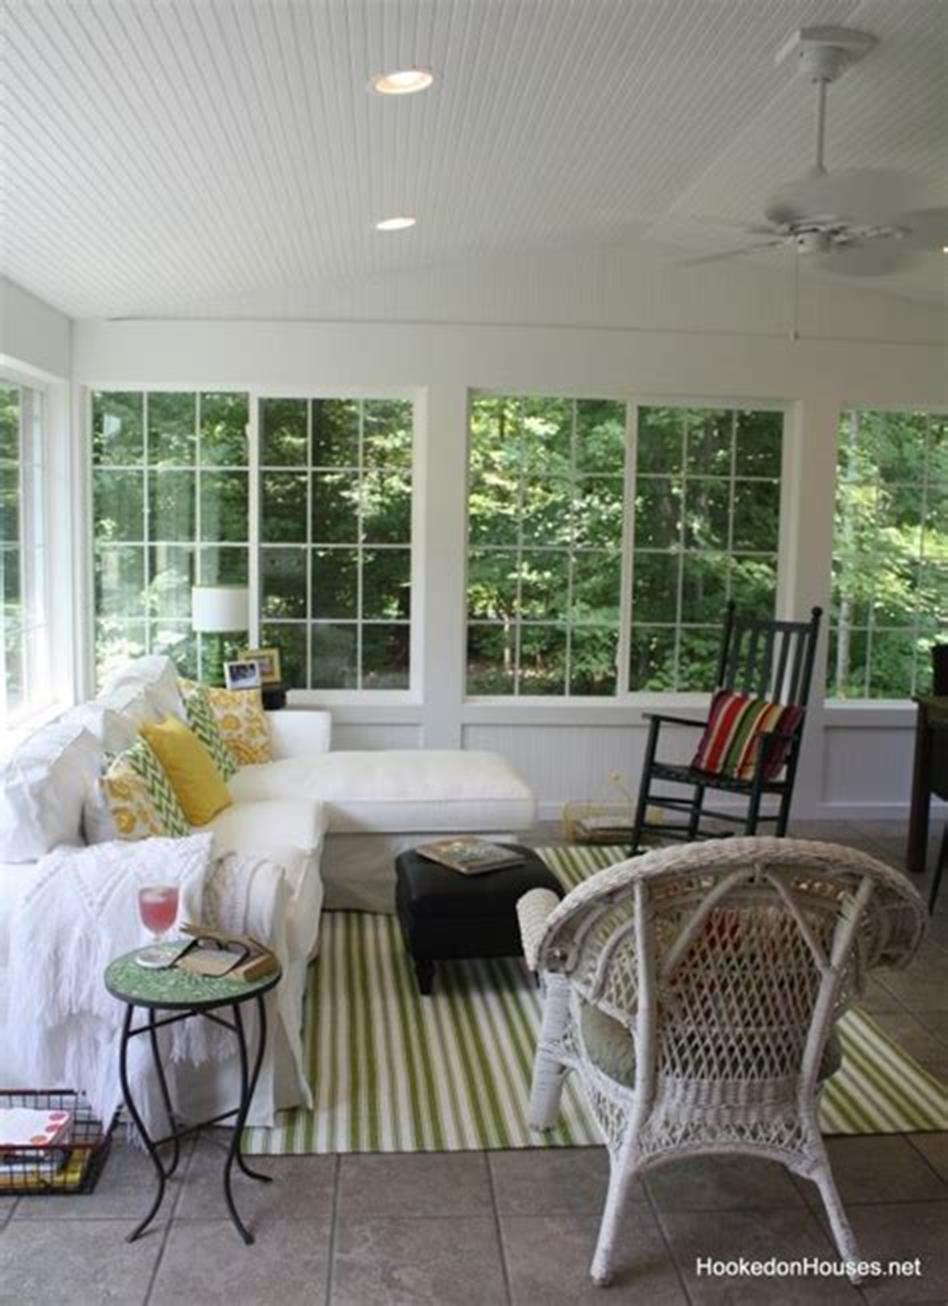 50 Most Popular Affordable Sunroom Design Ideas on a Budget 54